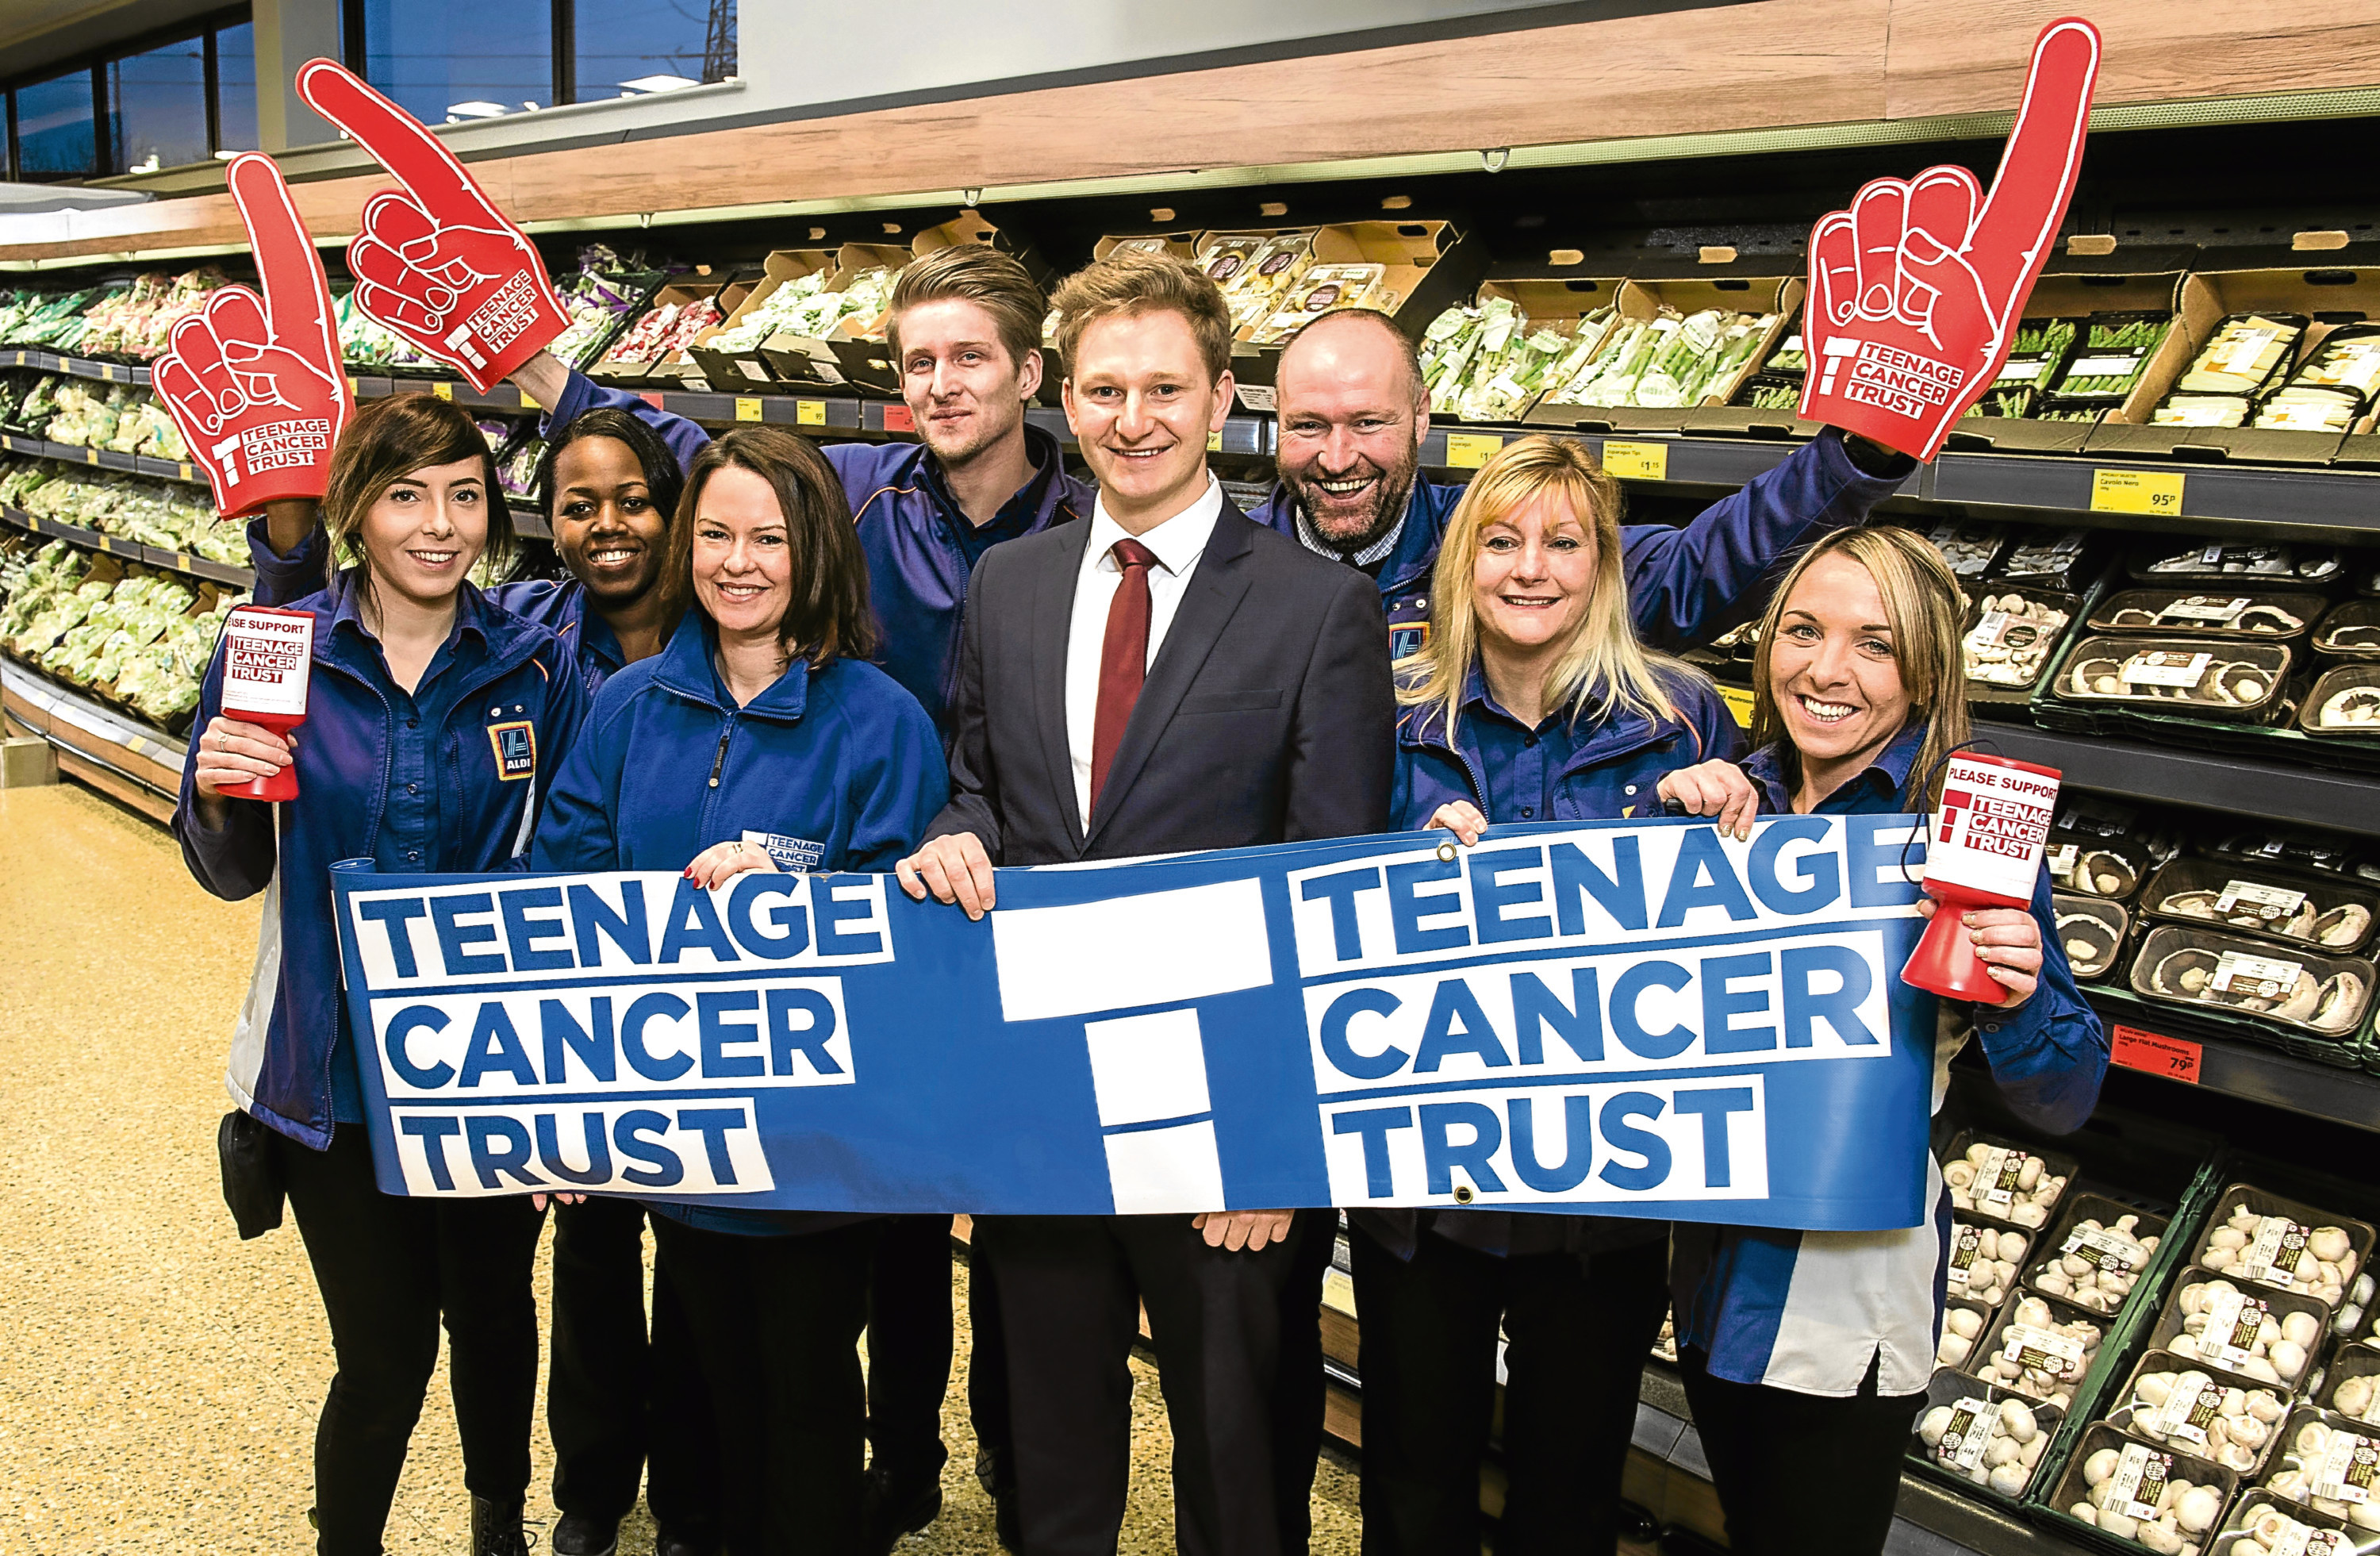 Pictured is employees of Aldi who have raised money for Teenage Cancer Trust. Kind-hearted customers and staff at Aldi's stores in Aberdeen have raised more than £1,400 for the Teenage Cancer Trust. picture submitted 12/01/2018